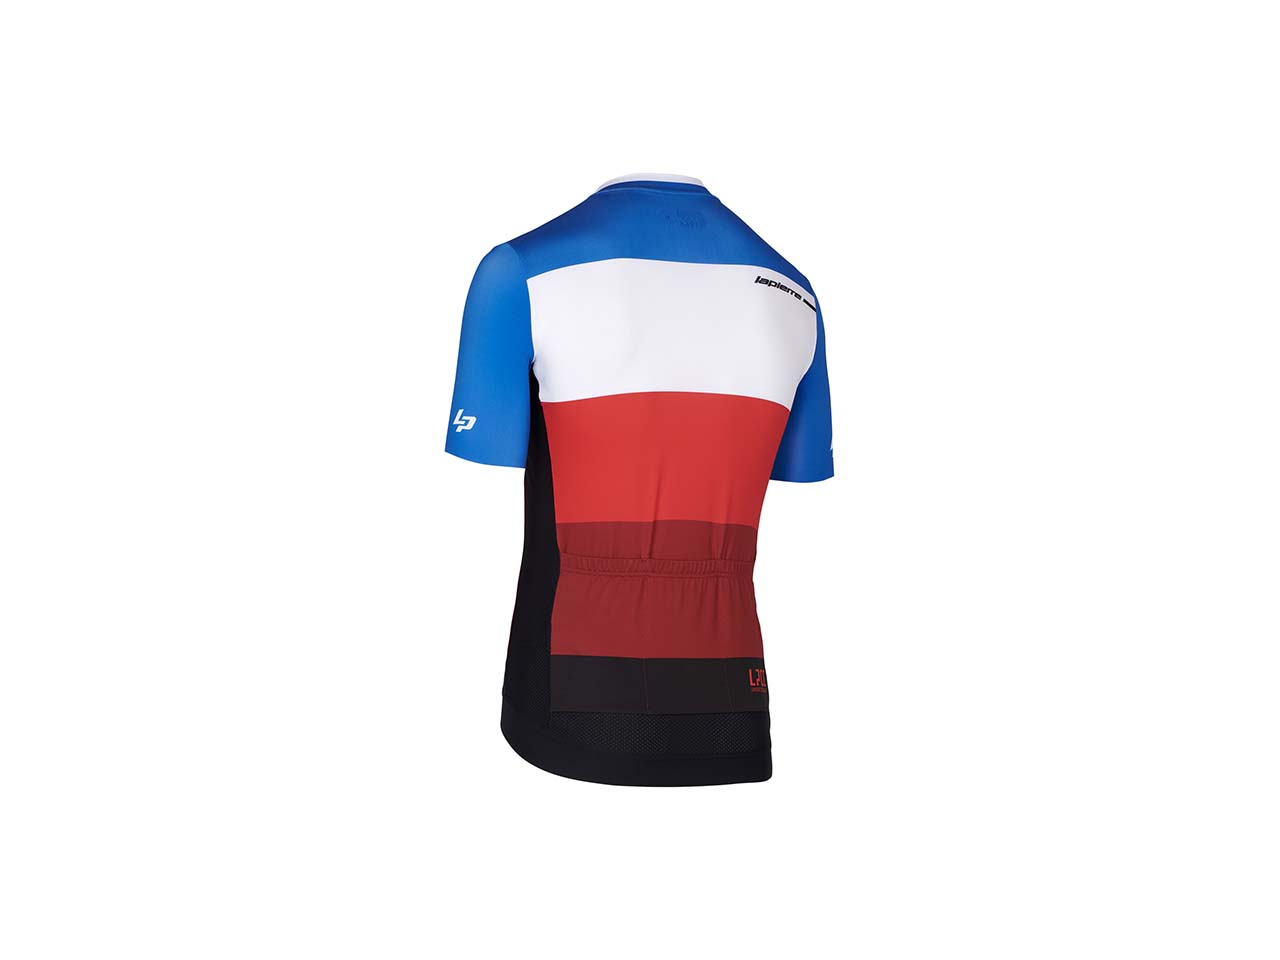 Lapierre Superlight So Frenchy Cycling Jersey - back